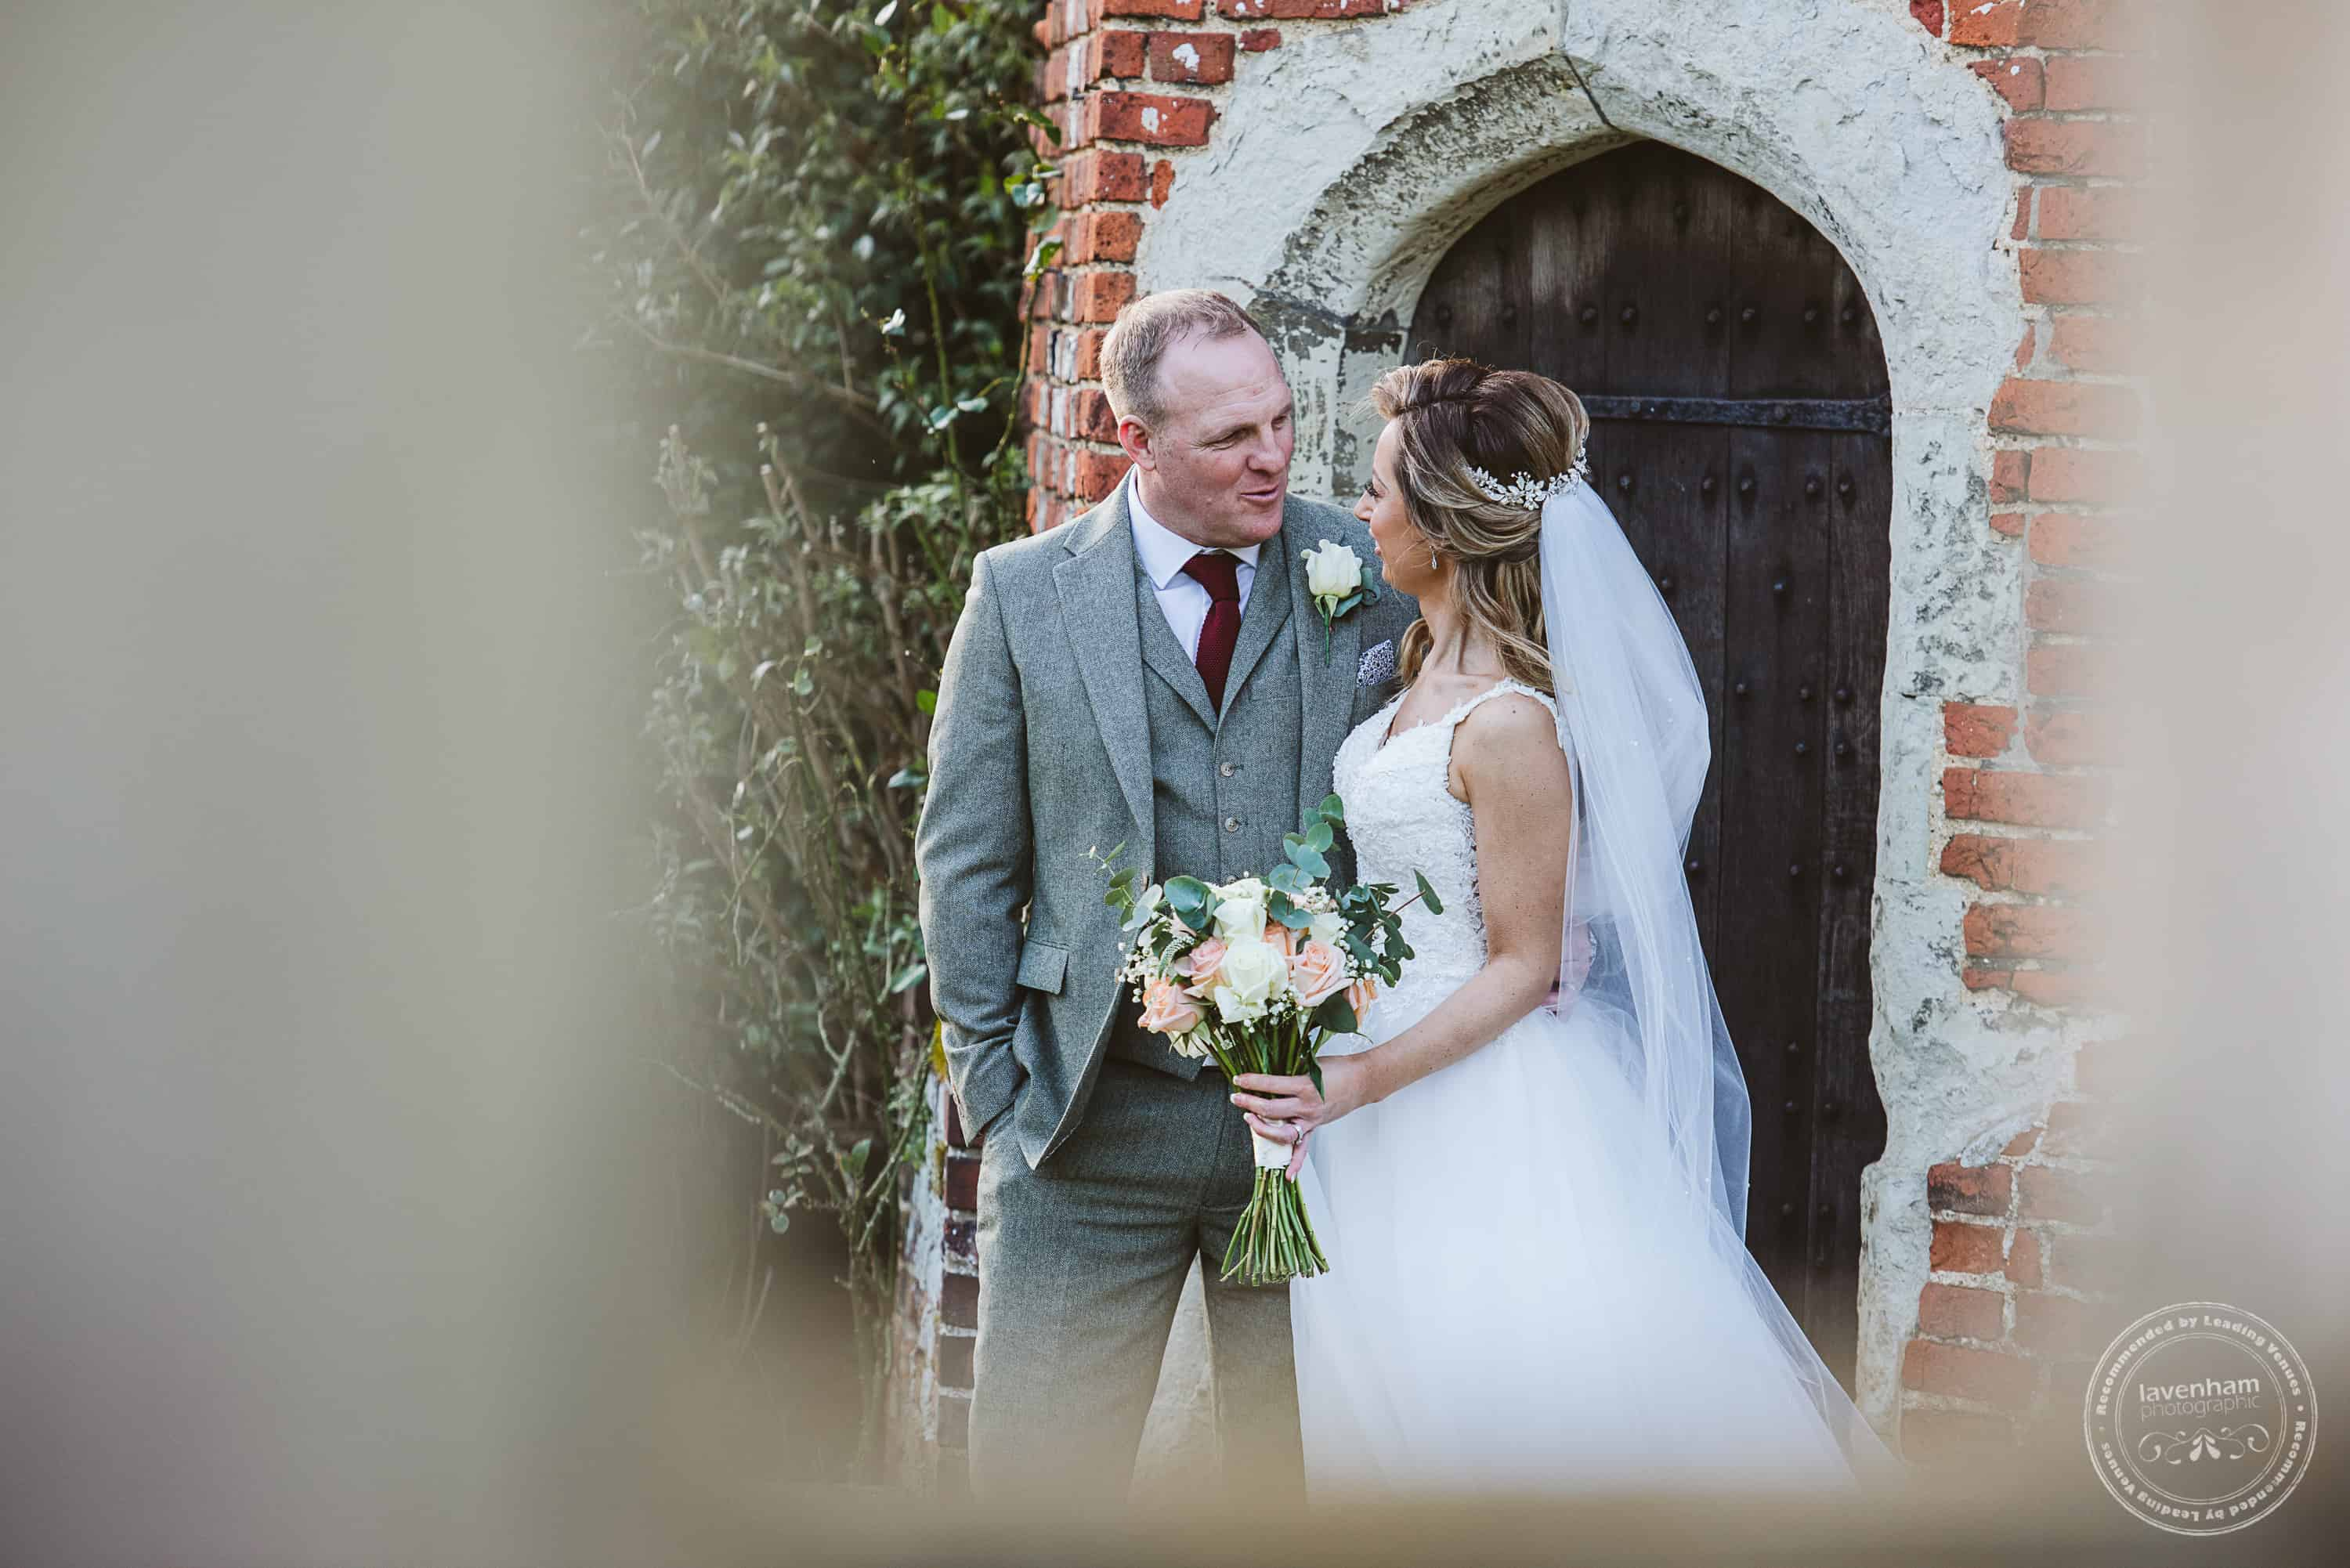 010220 Leez Priory Wedding Photographer 101